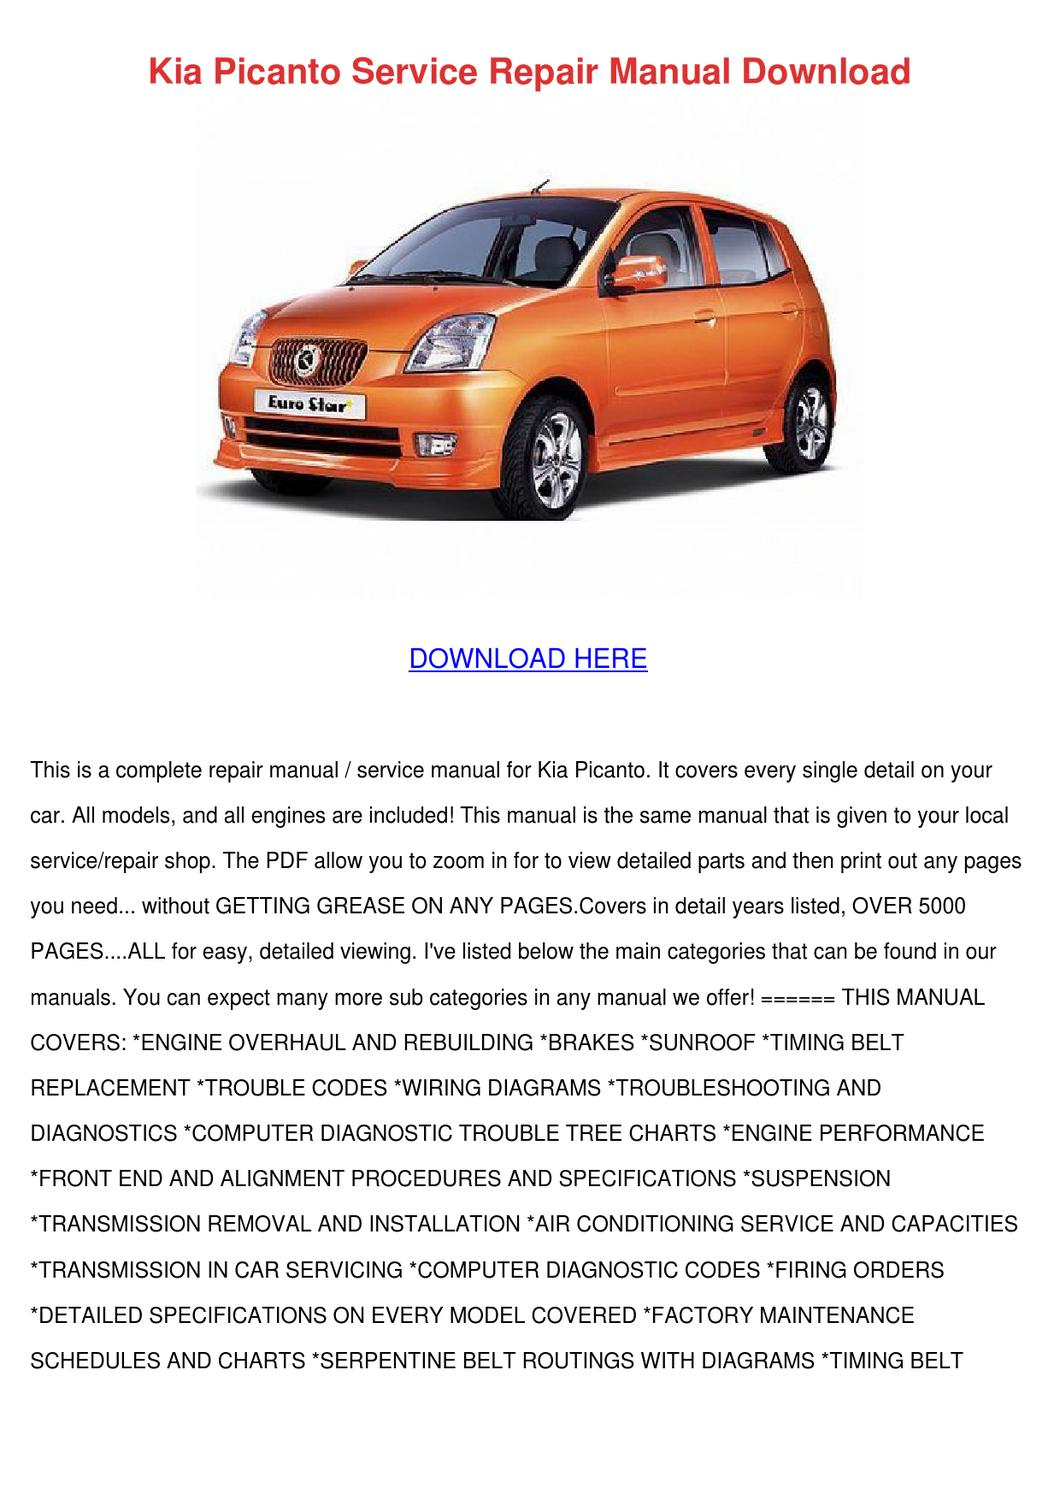 page_1 kia picanto service repair manual download by shonta wede issuu kia picanto wiring diagram pdf at suagrazia.org